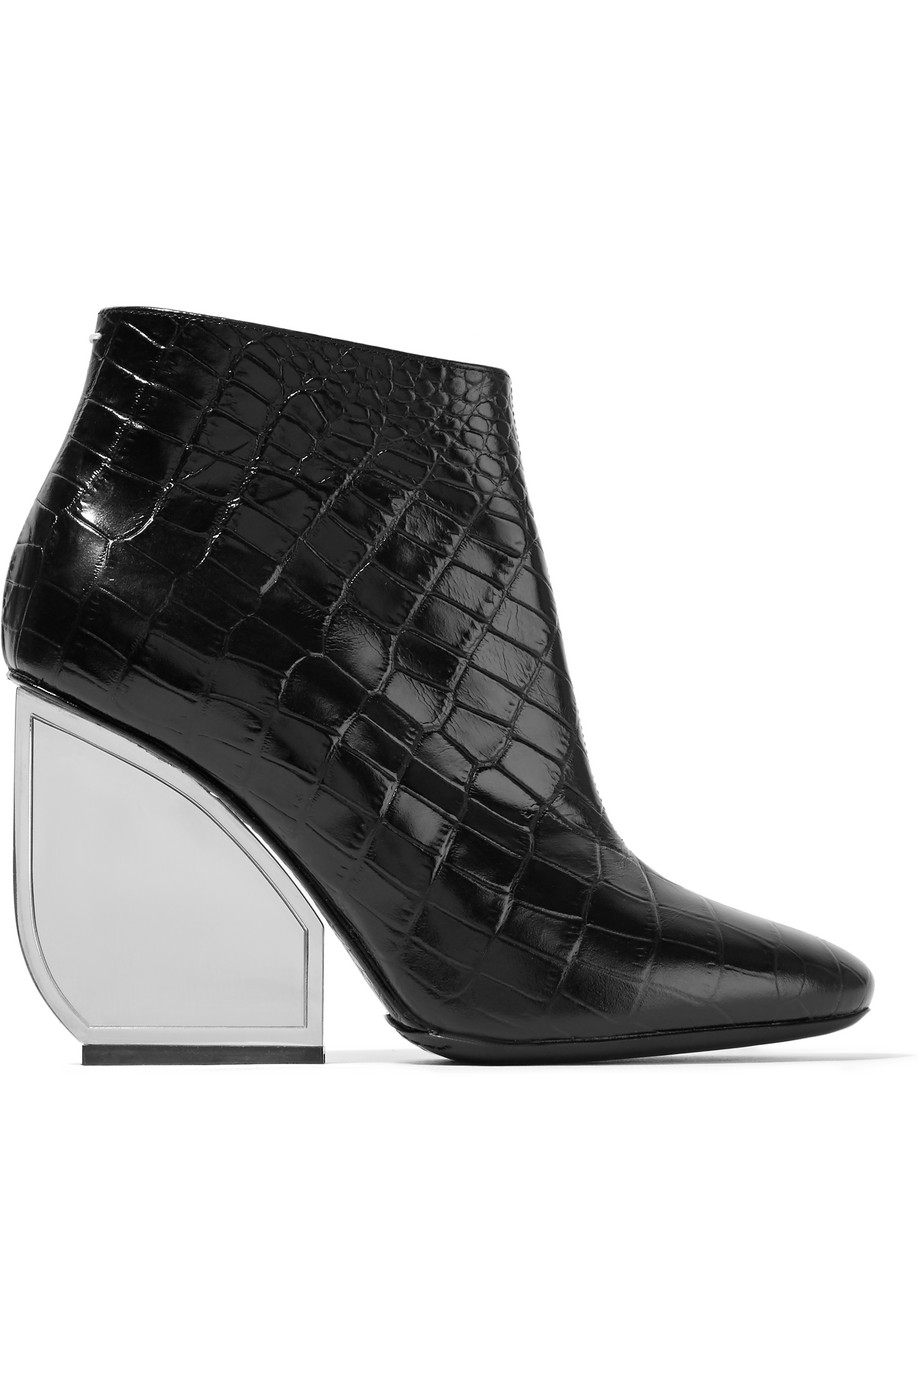 Maison Margiela Croc-Effect Leather Ankle Boots, Black, Women's US Size: 5.5, Size: 36